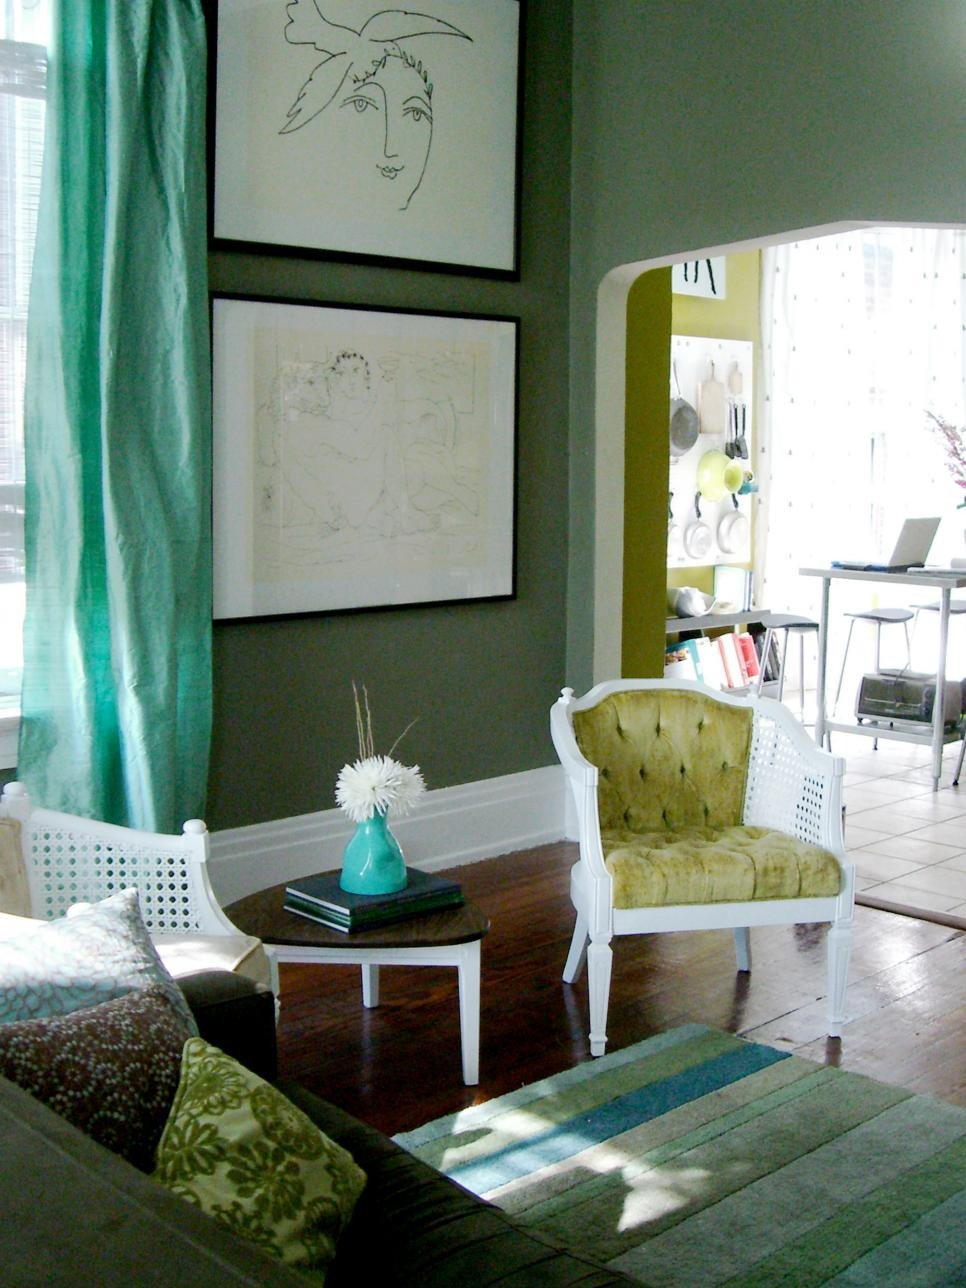 Small Living Roompaint Ideas Best Of Paint Ideas for Living Room with Narrow Space theydesign theydesign